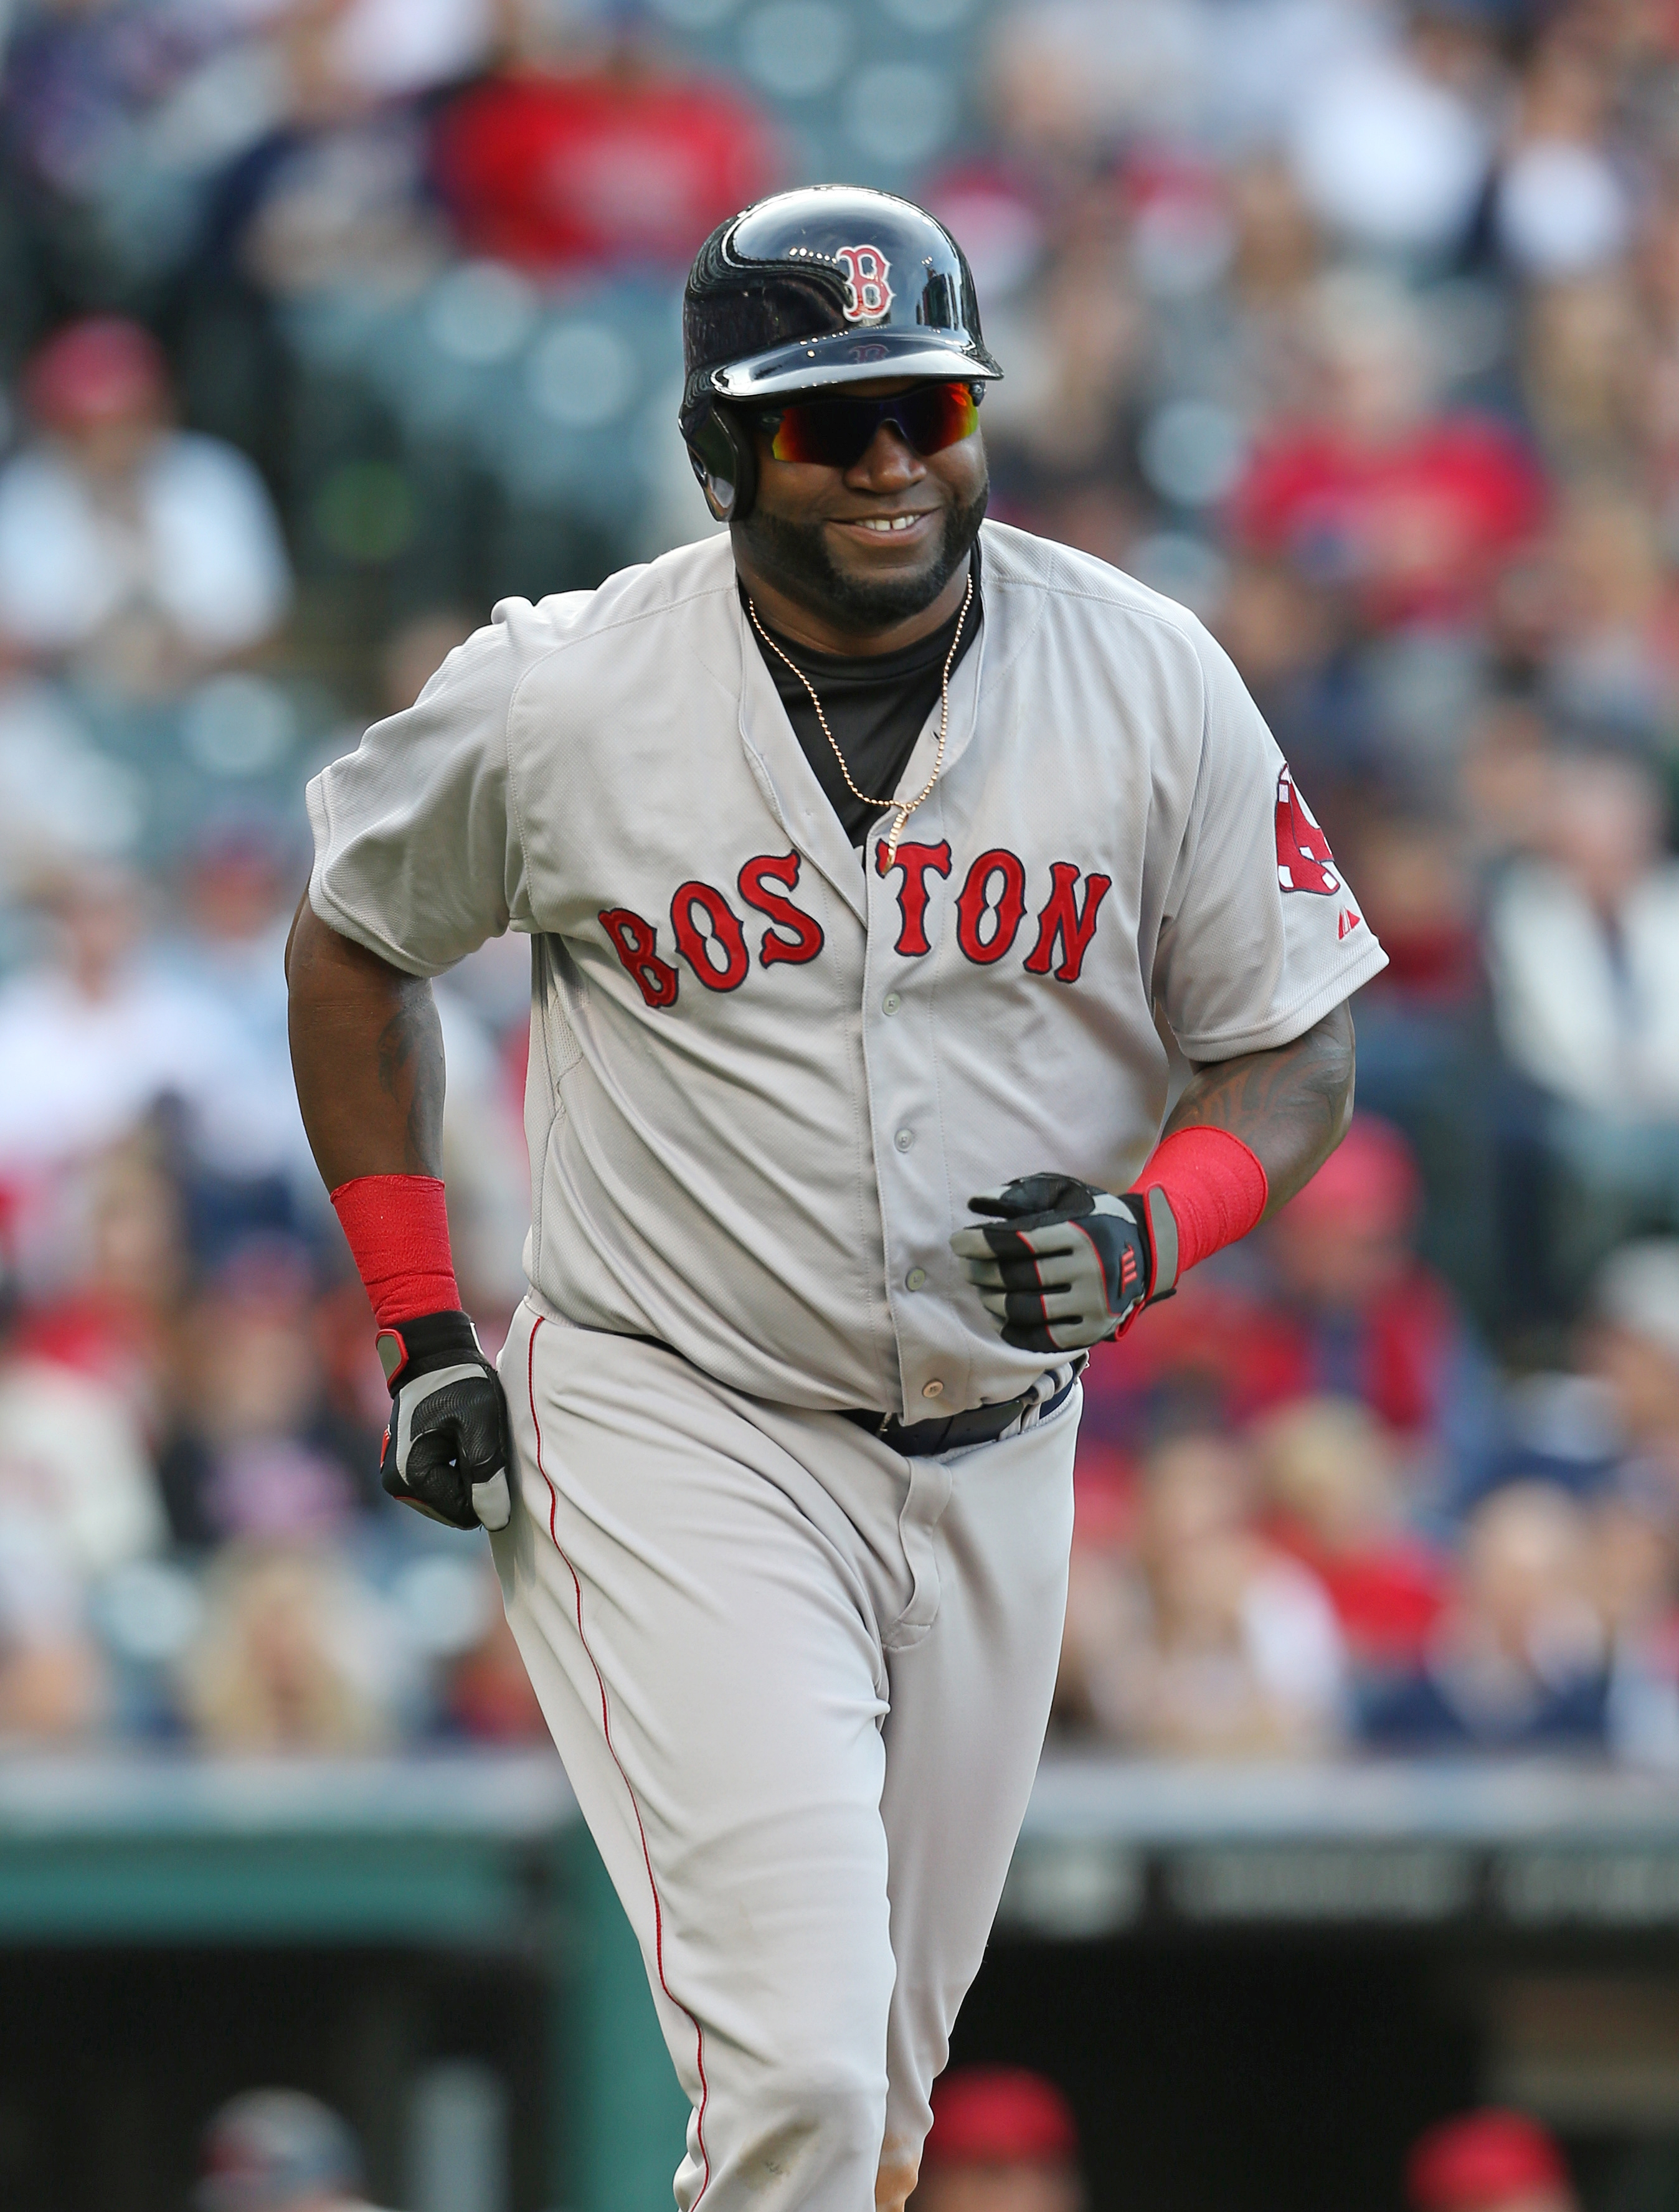 Boston Red Sox's David Ortiz against the Cleveland Indians during the sixth inning of a baseball game, Sunday, Oct. 4, 2015, in Cleveland. (AP Photo/Ron Schwane)